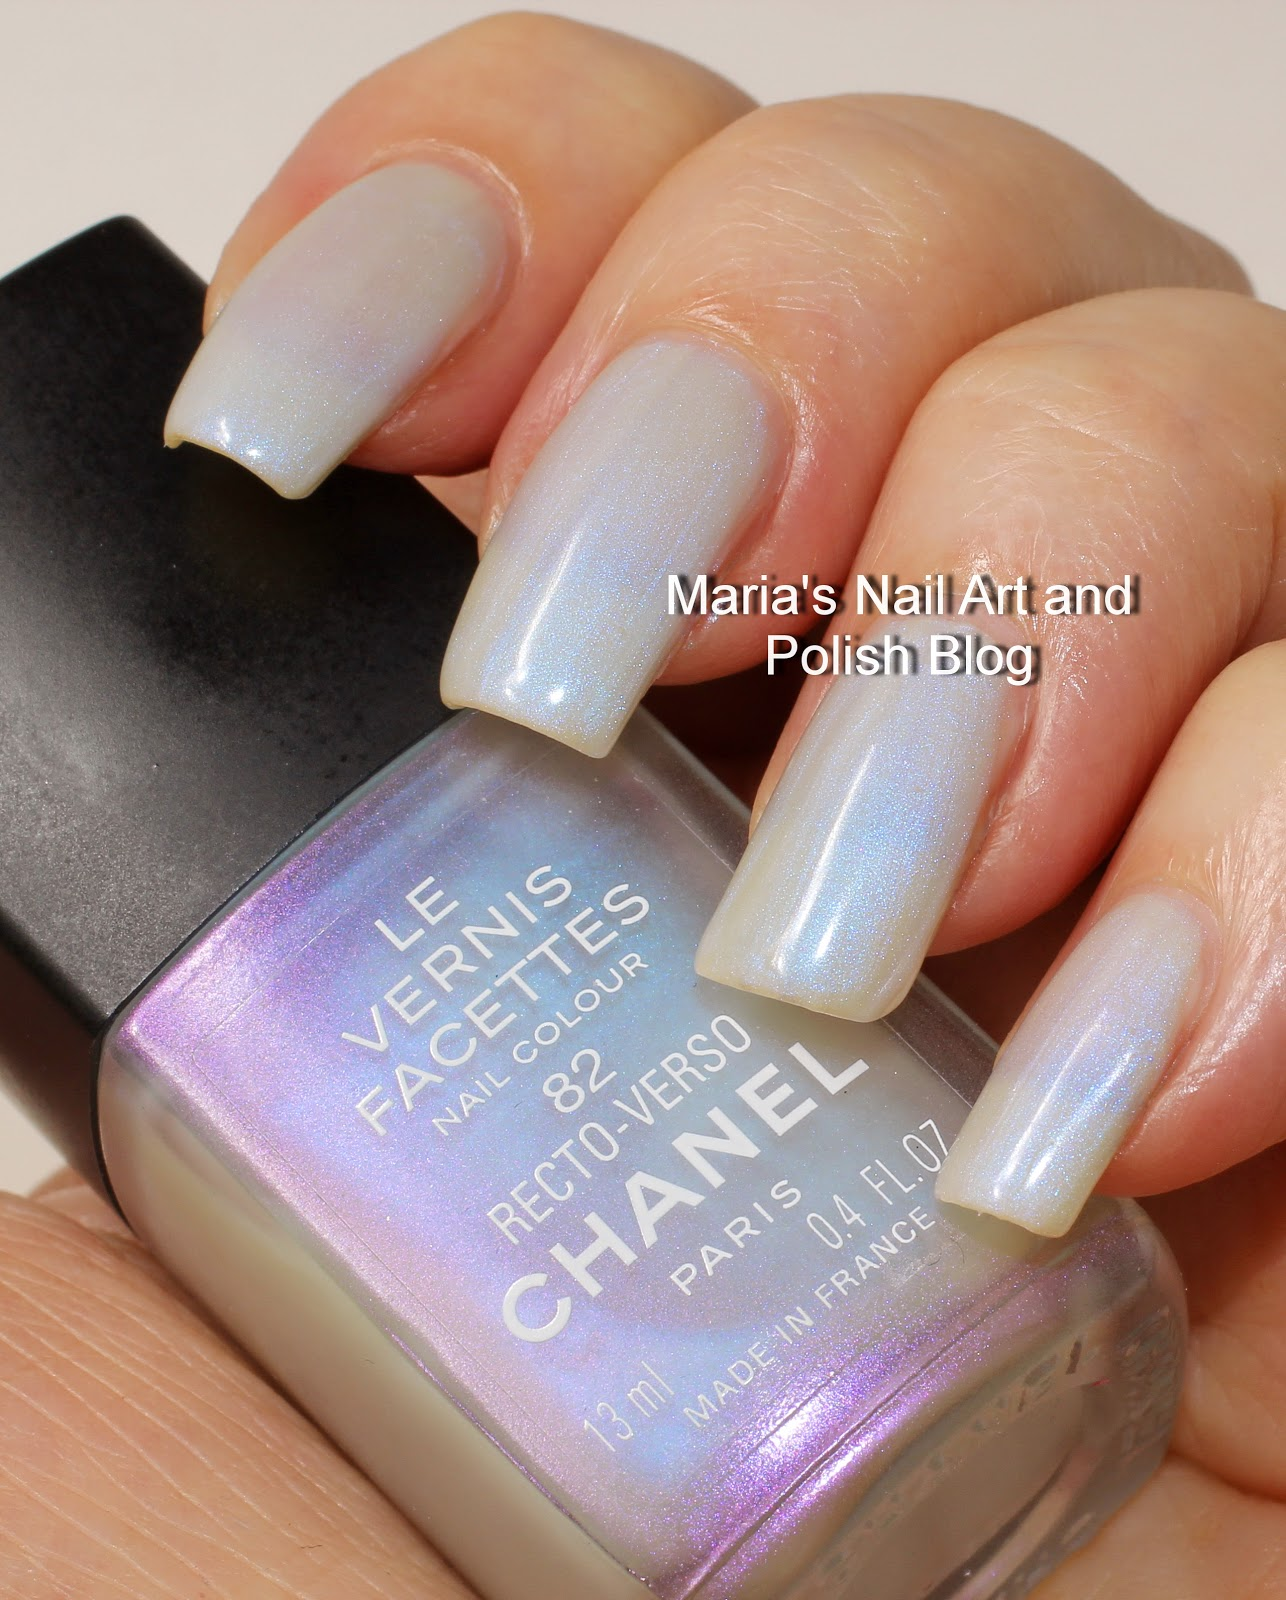 Marias nail art and polish blog chanel recto verso 82 les vernis in this collaboration saturday with my friend elena from picturedtinsel i have the second of the four polishes from chanel les vernis facettes coll 2000 prinsesfo Choice Image